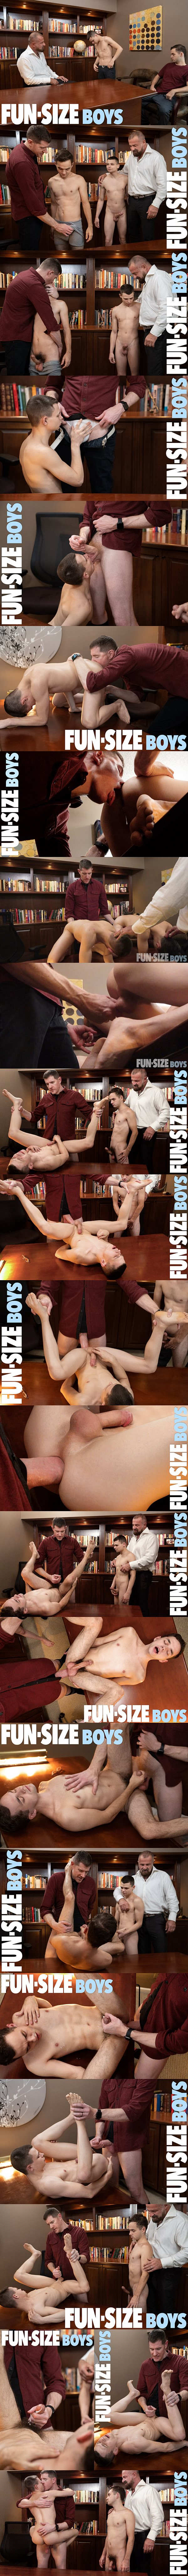 Funsizeboys - macho daddies Felix Kamp and LeGrand Wolf bareback cute twinks Austin Young and Marcus Rivers in an older younger scene in Fun-Pack Chapter 6 Principal's Office 02